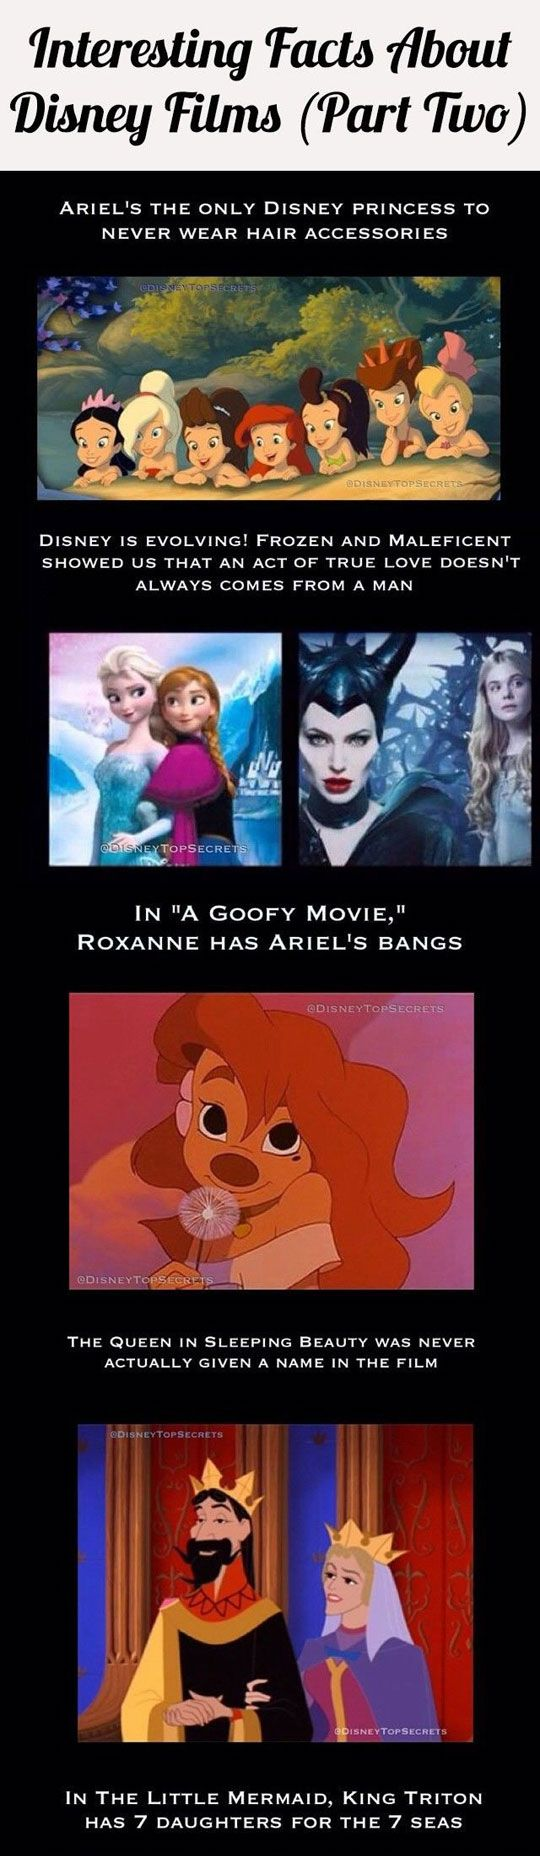 Interesting Disney Facts You Probably Don't Know